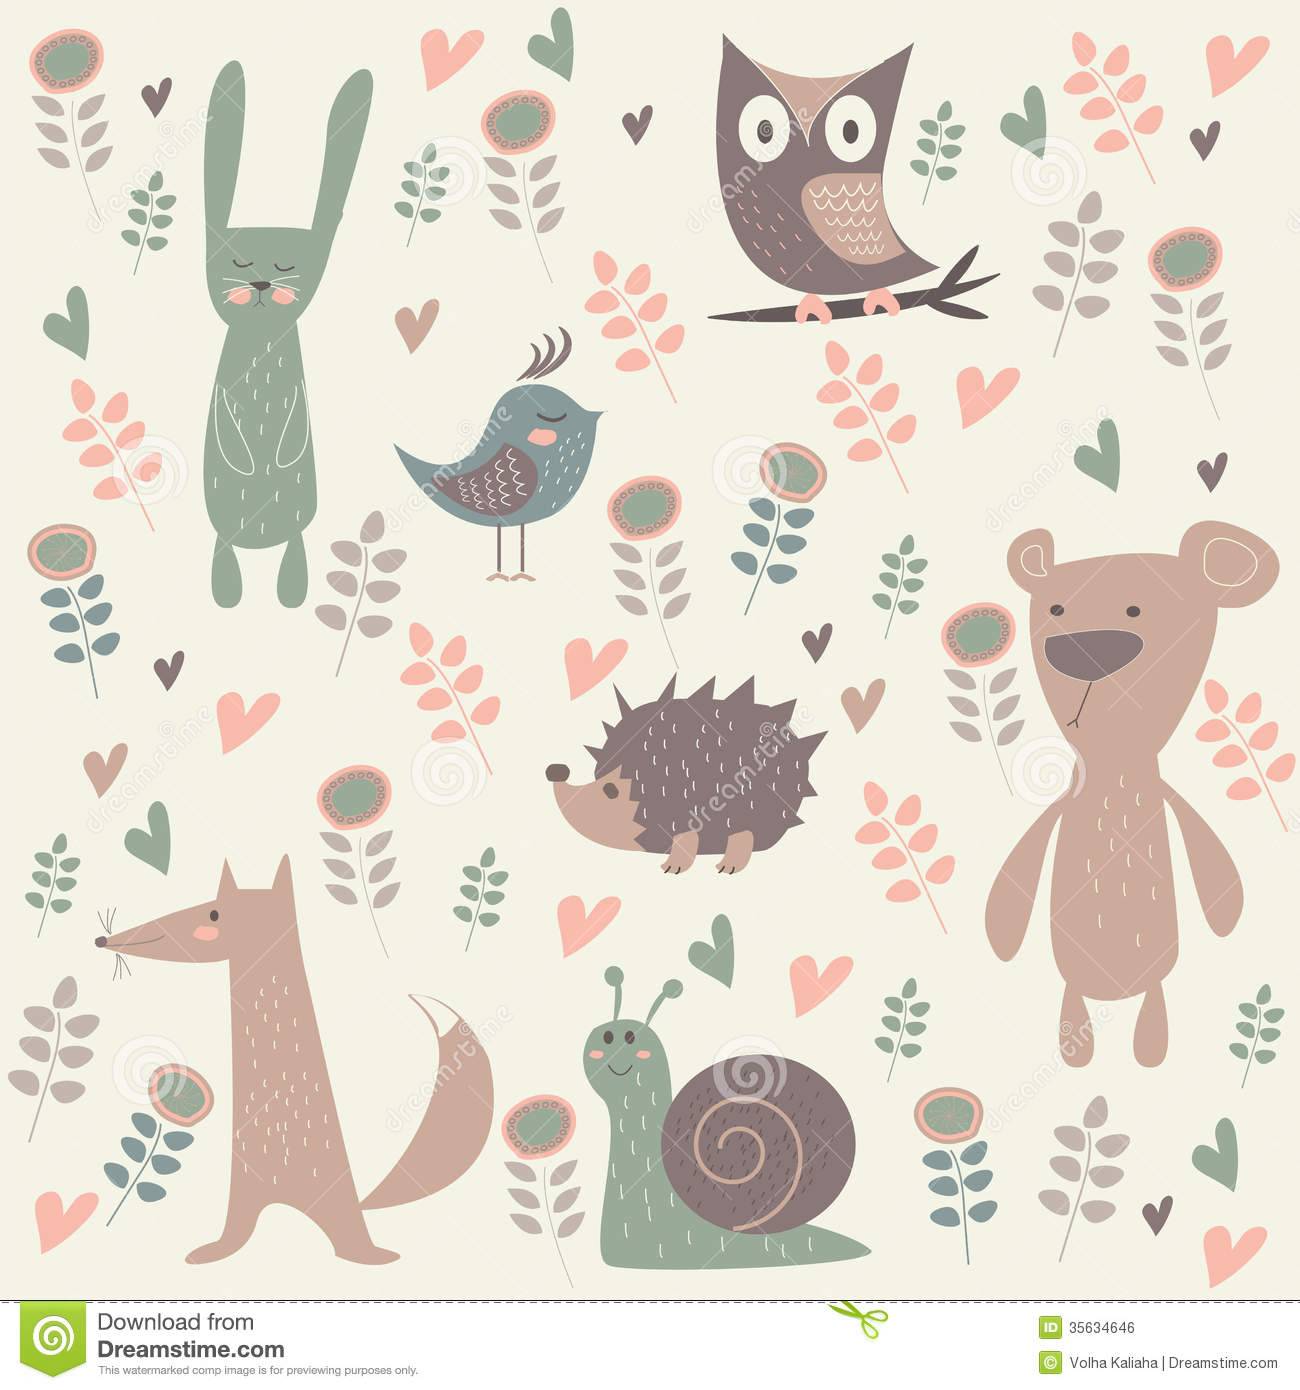 Cute north forest animals. Illustration of rabbit, bear, hedgehog ...